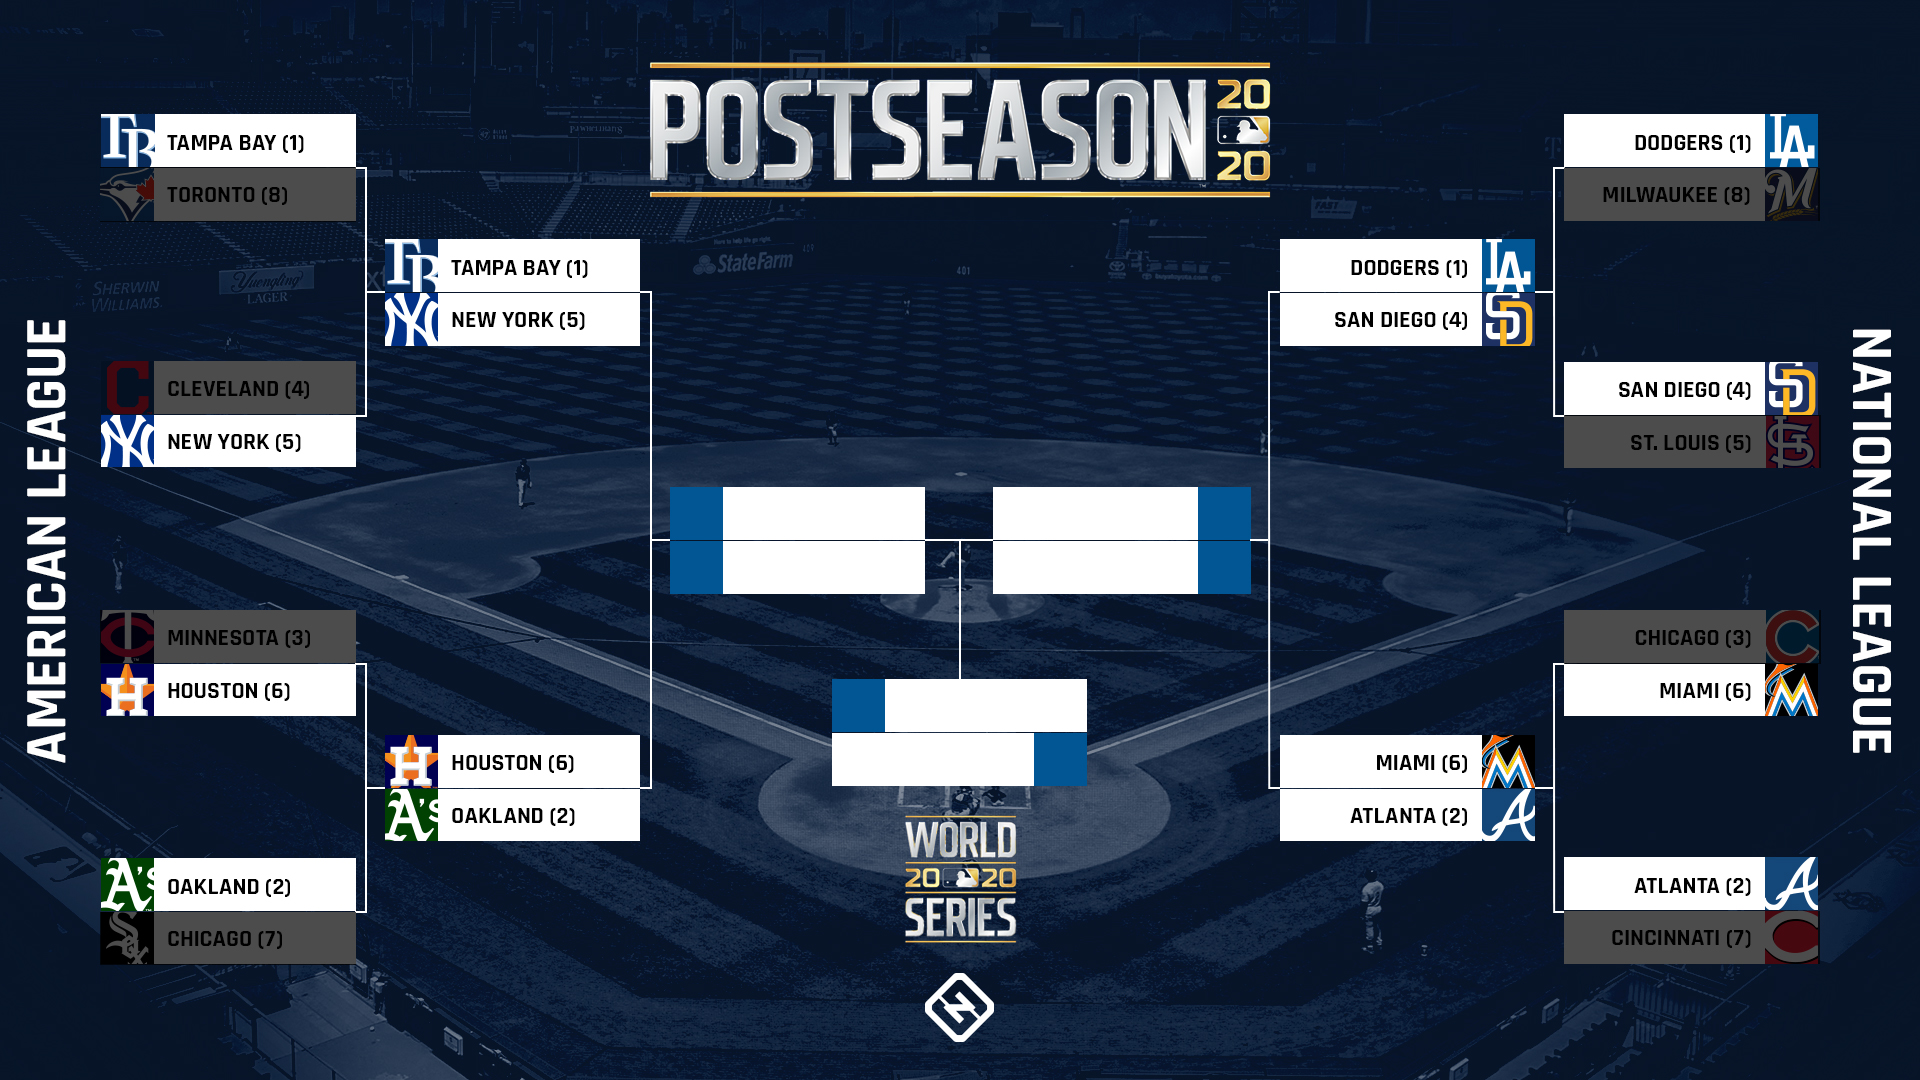 MLB playoff bracket 2020: Updated TV schedule, scores, results for the Division Series